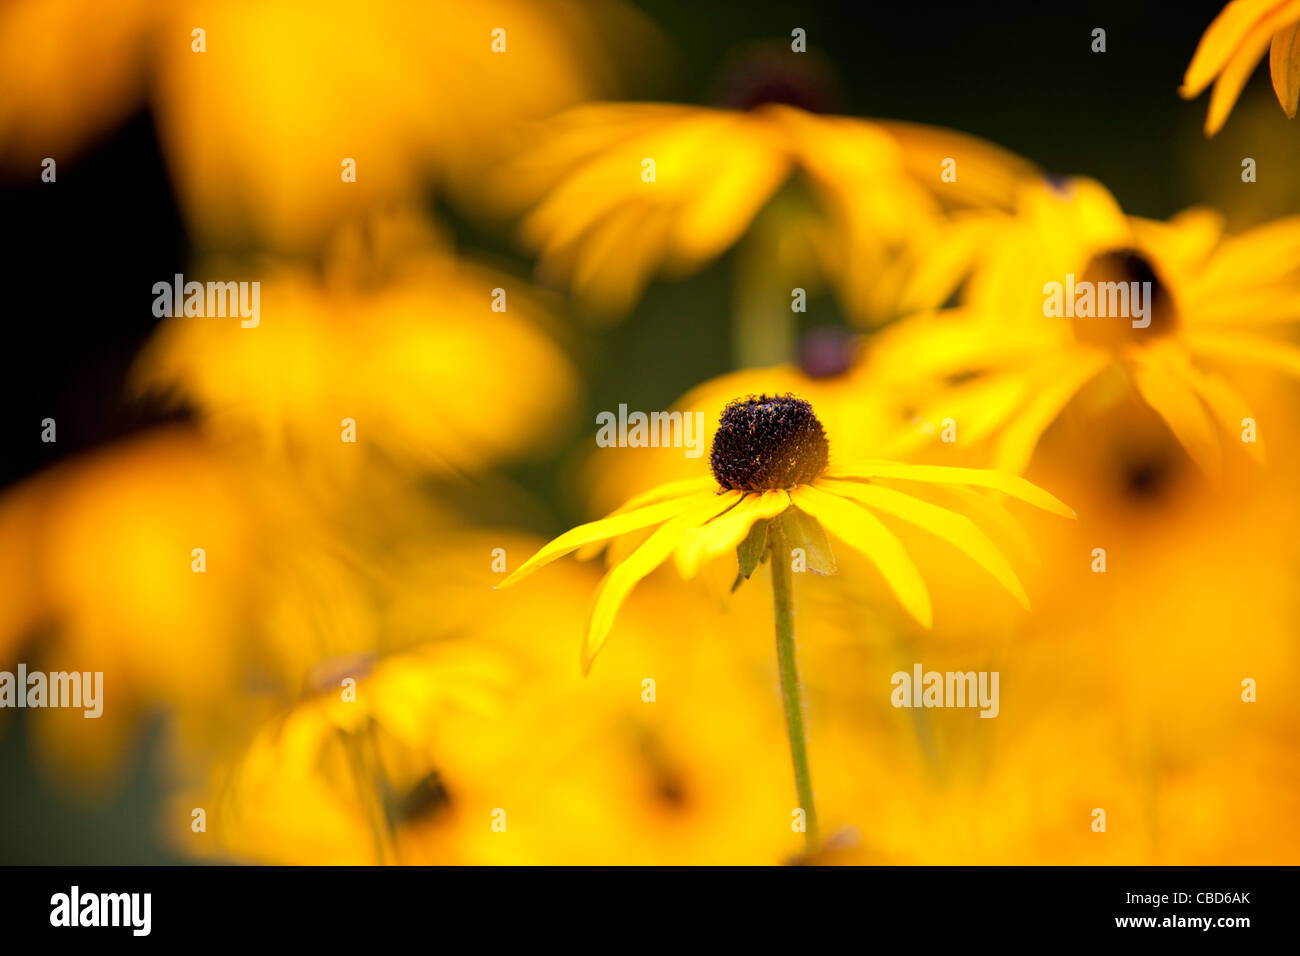 Yellow flower with brown center stock photos yellow flower with yellow flowers brown eyed susan stock image mightylinksfo